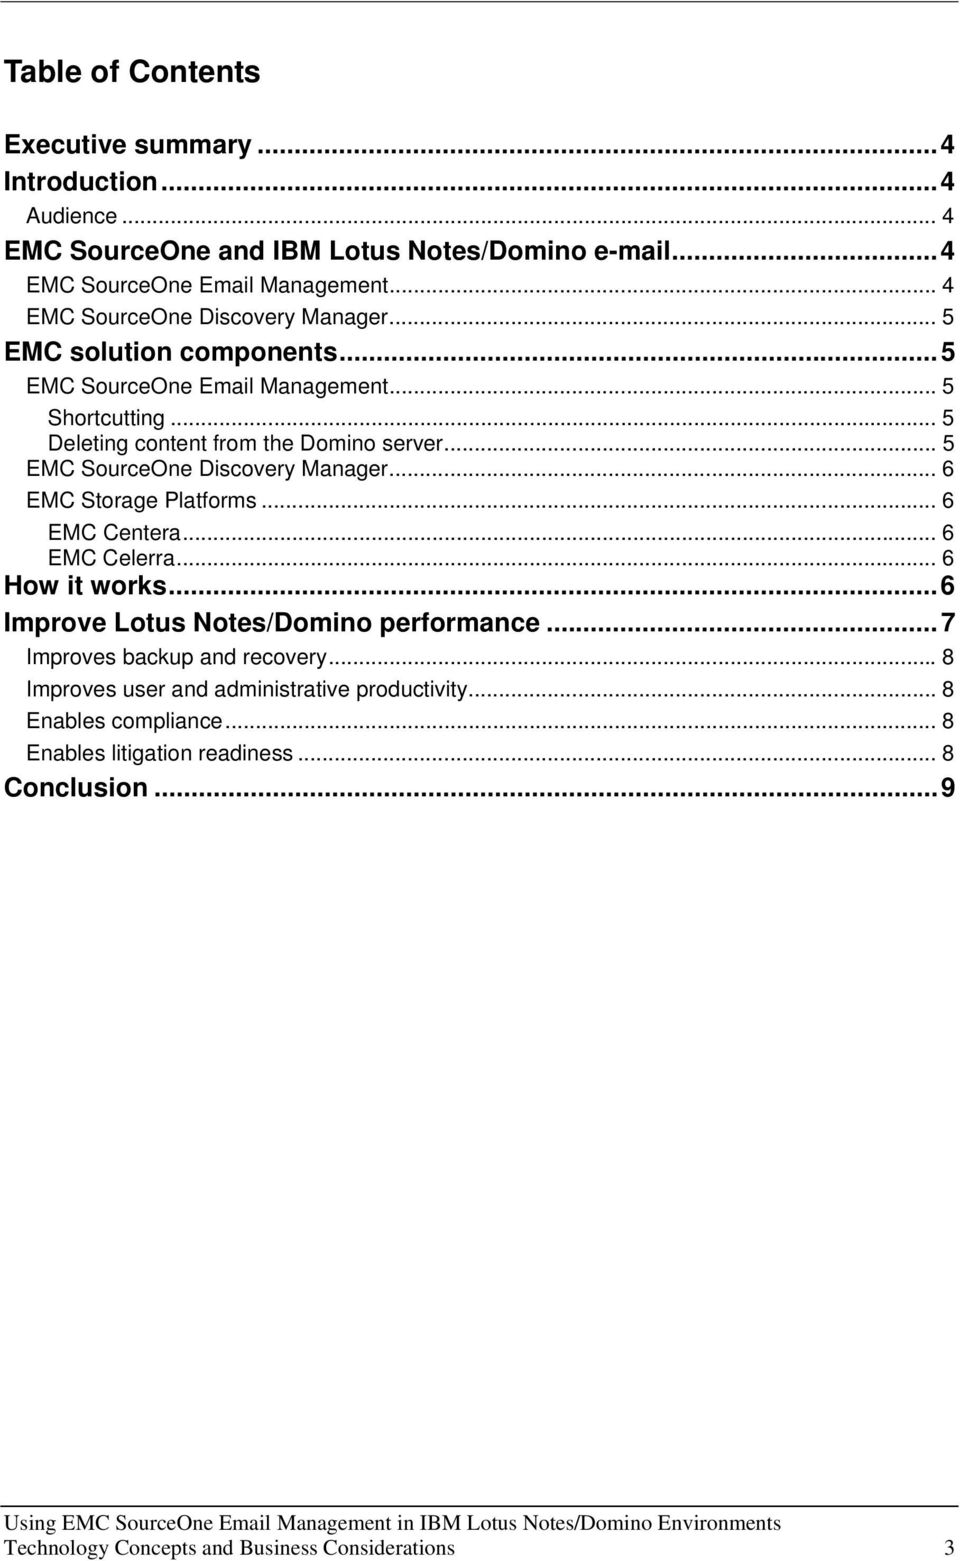 .. 5 EMC SourceOne Discovery Manager... 6 EMC Storage Platforms... 6 EMC Centera... 6 EMC Celerra... 6 How it works...6 Improve Lotus Notes/Domino performance.